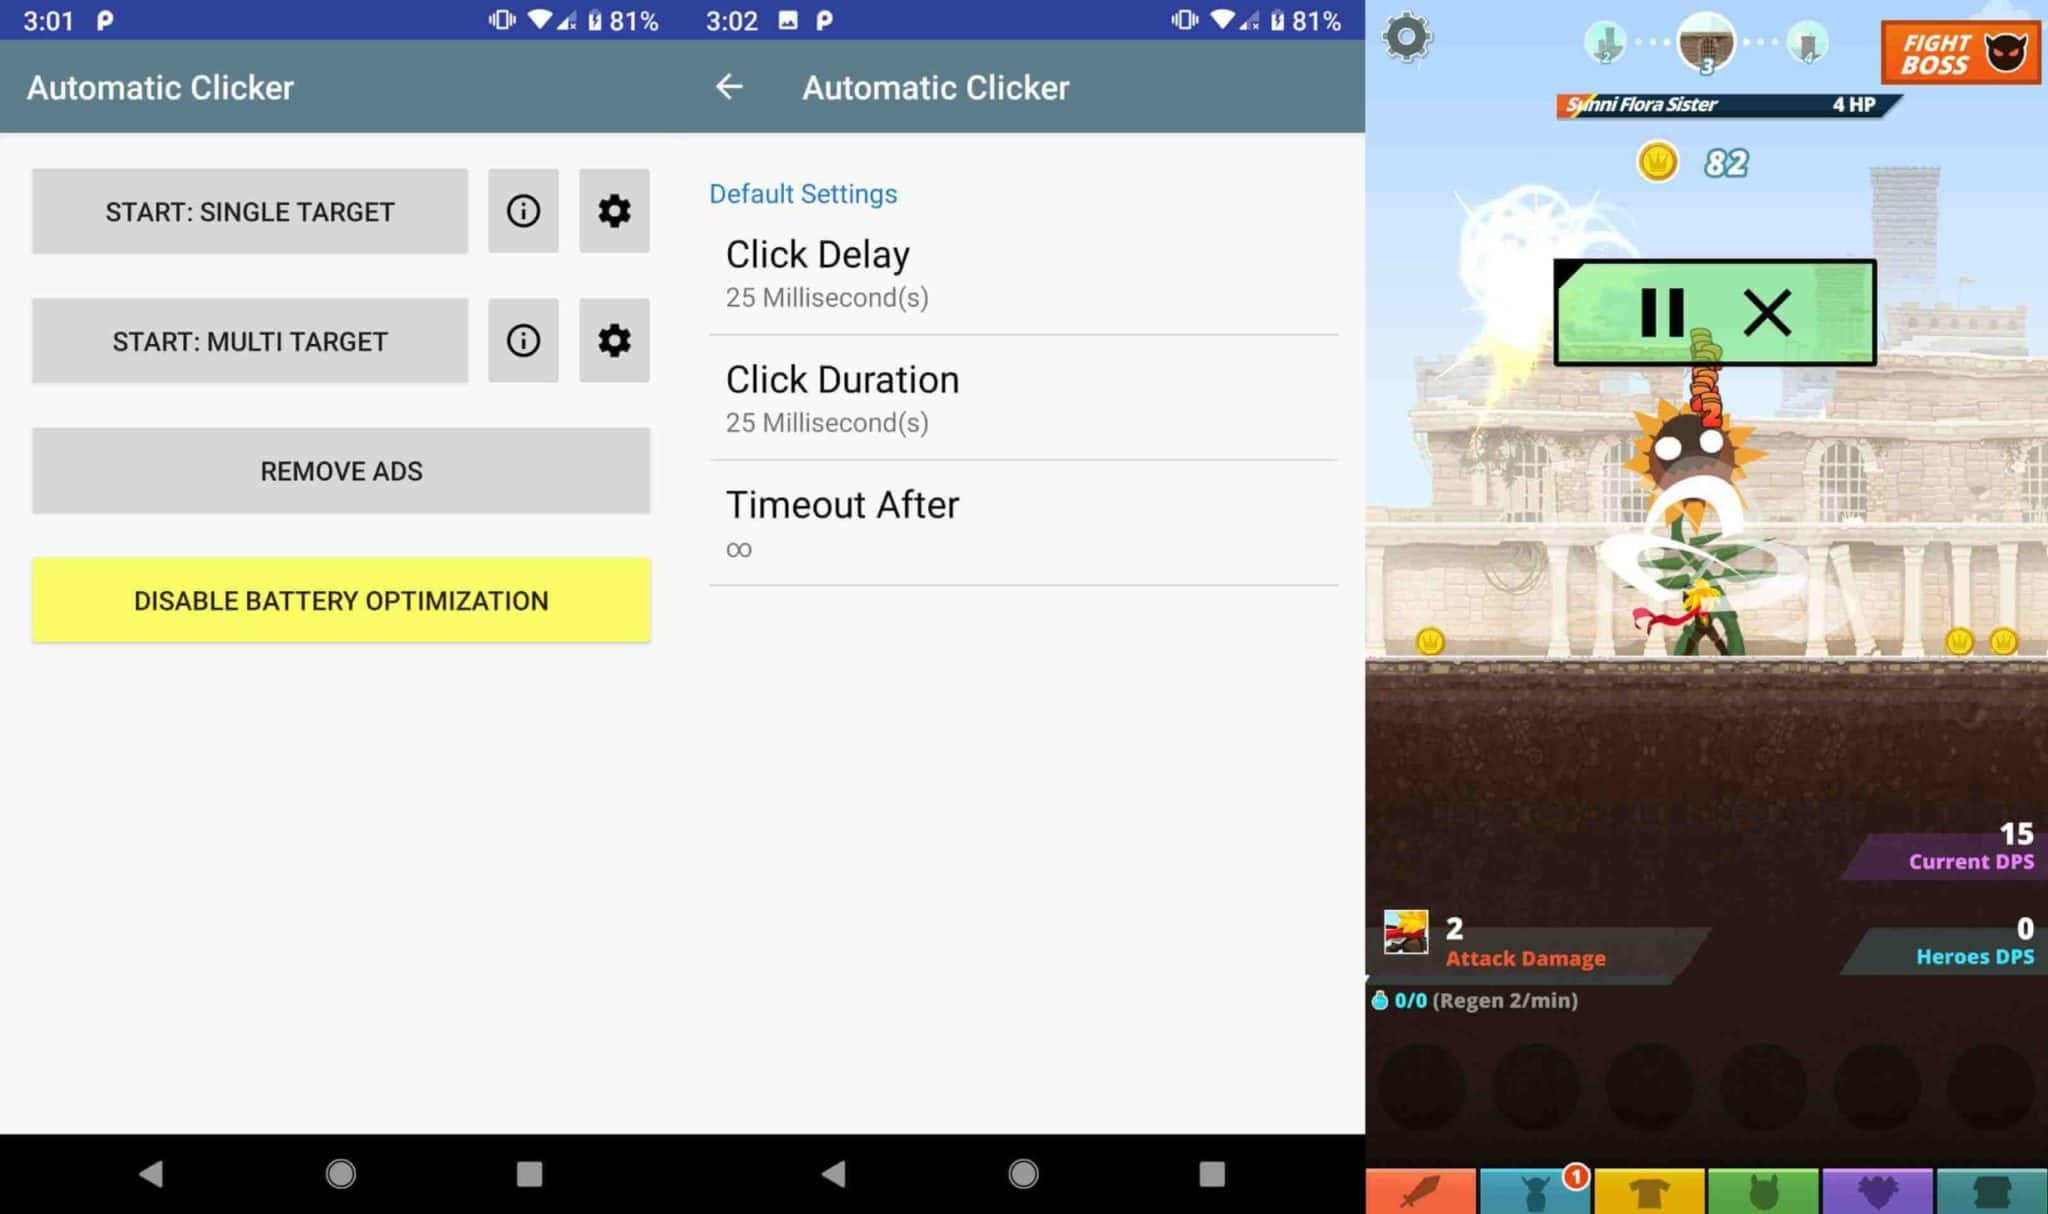 Start the app and customize the various settings like frequency of clicks and position